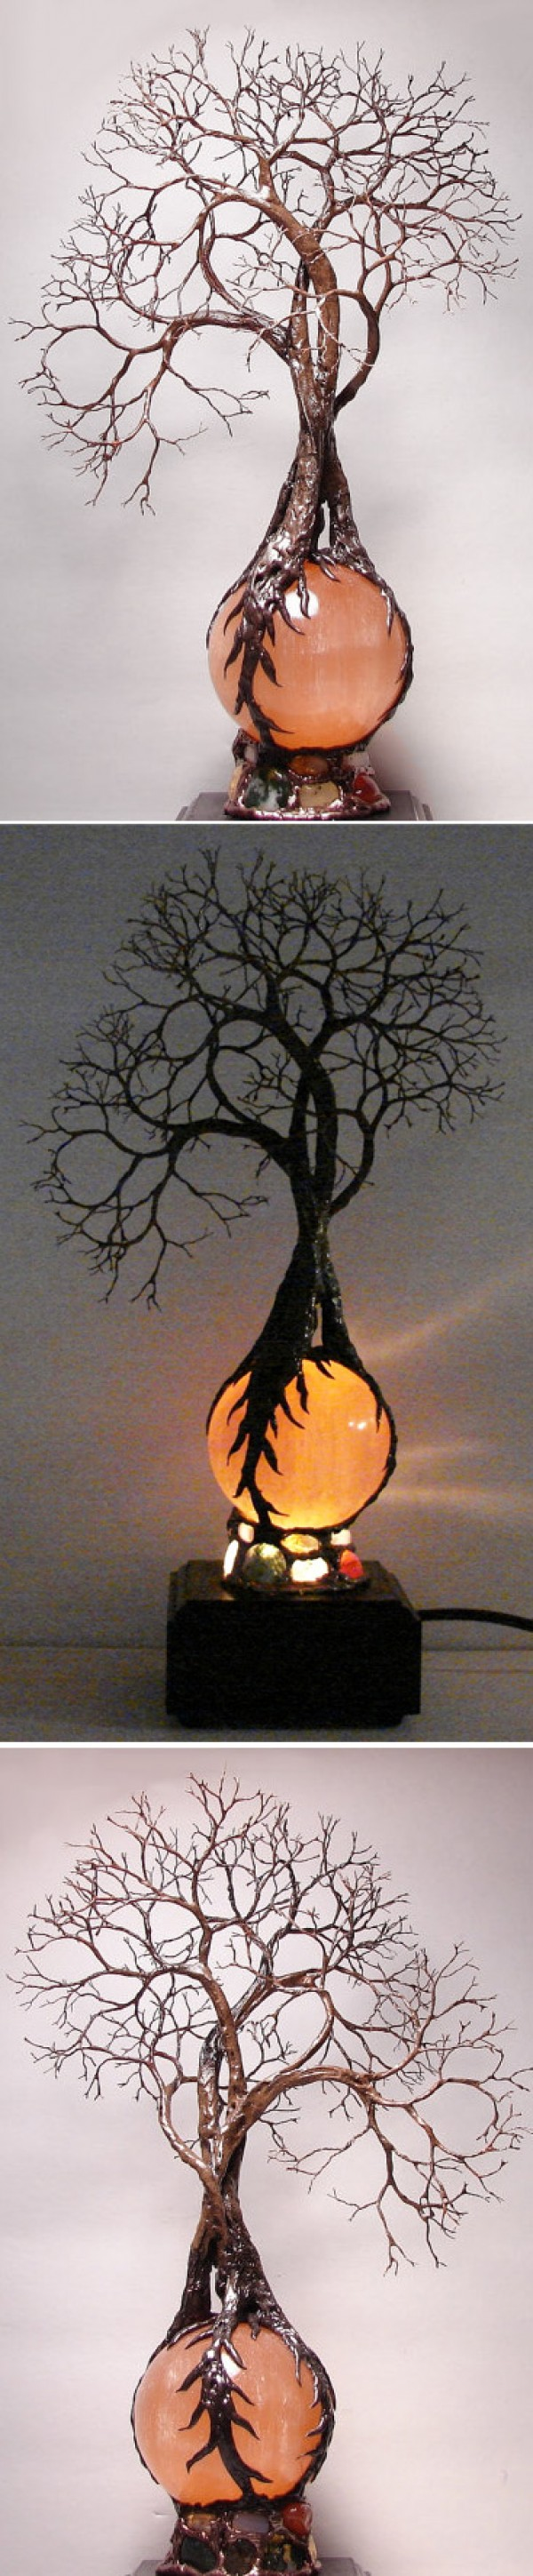 Check out this cool tree table lamp design